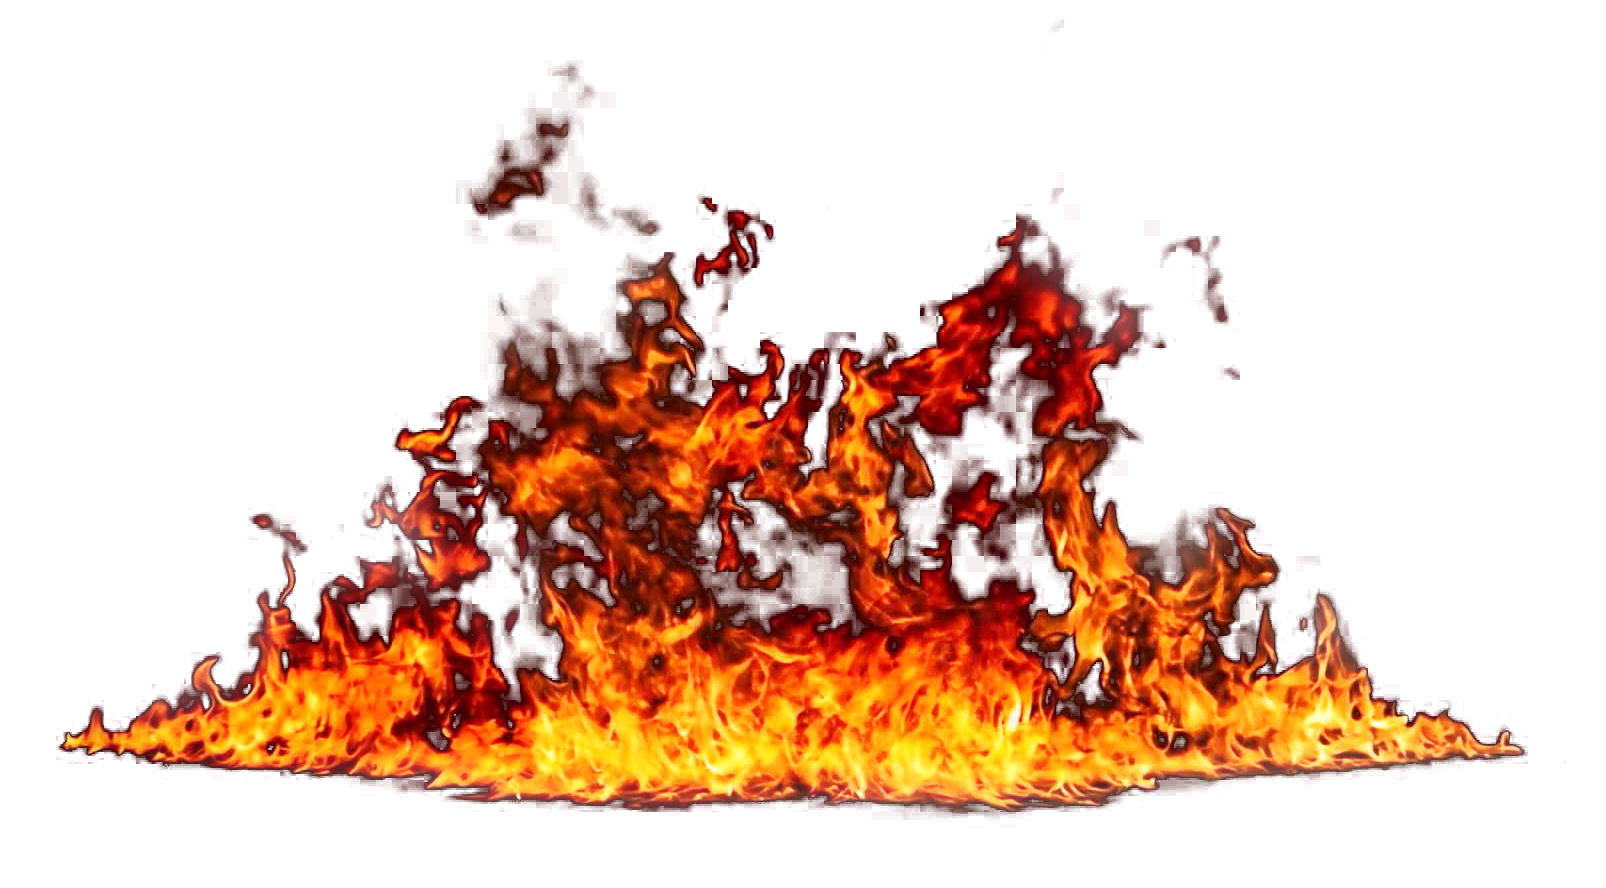 Big Fire Flame PNG Image image #44303